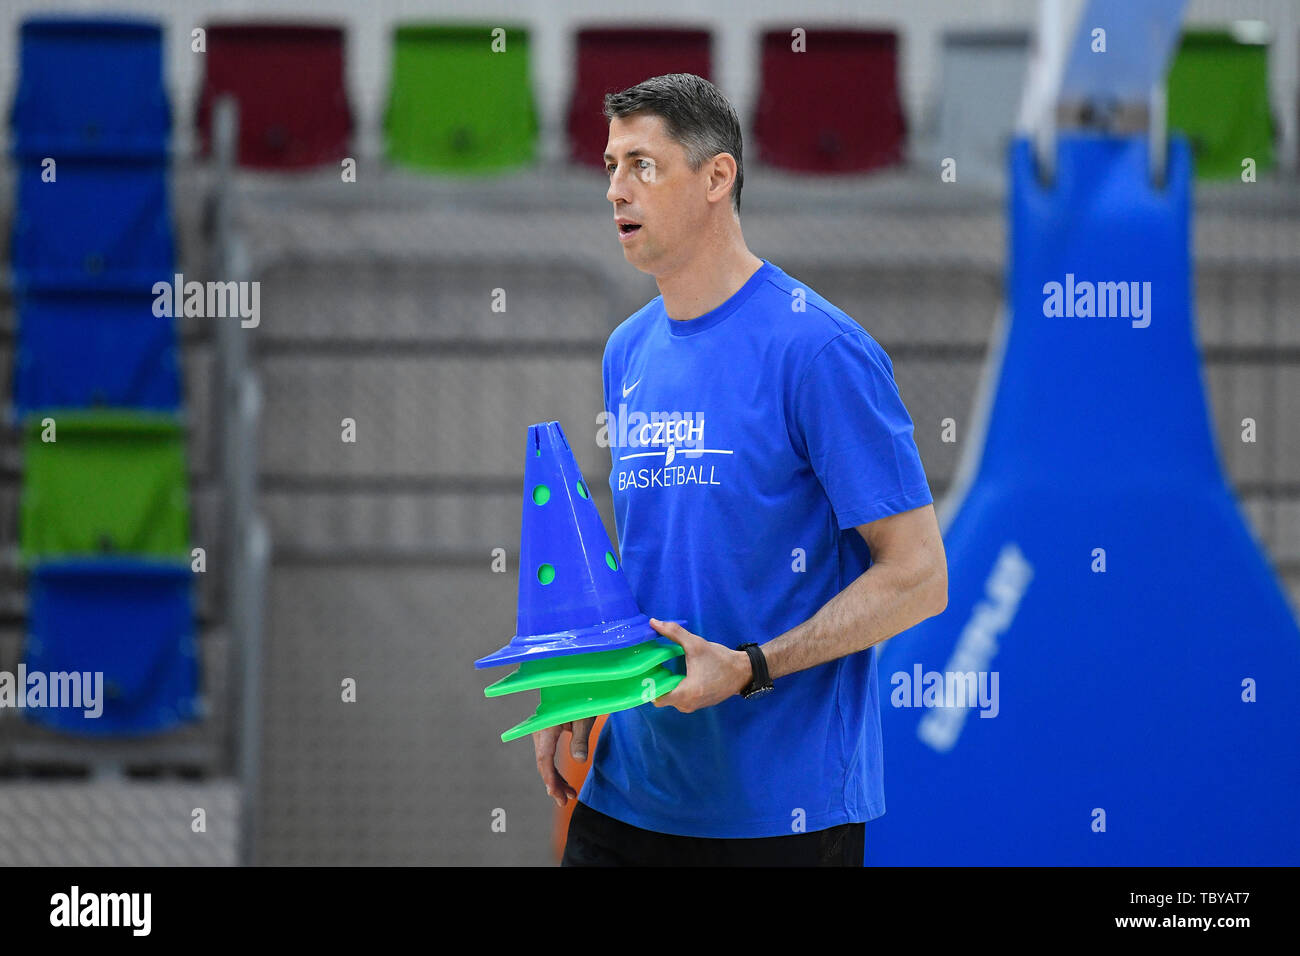 Stefan Svitek, Coach of the Czech Republic national basketball team, attends a training session prior to the European Championship (FIBA Women's EuroBasket 2019), on June 4, 2019, in Prague, Czech Republic. (CTK Photo/Ondrej Deml) Stock Photo